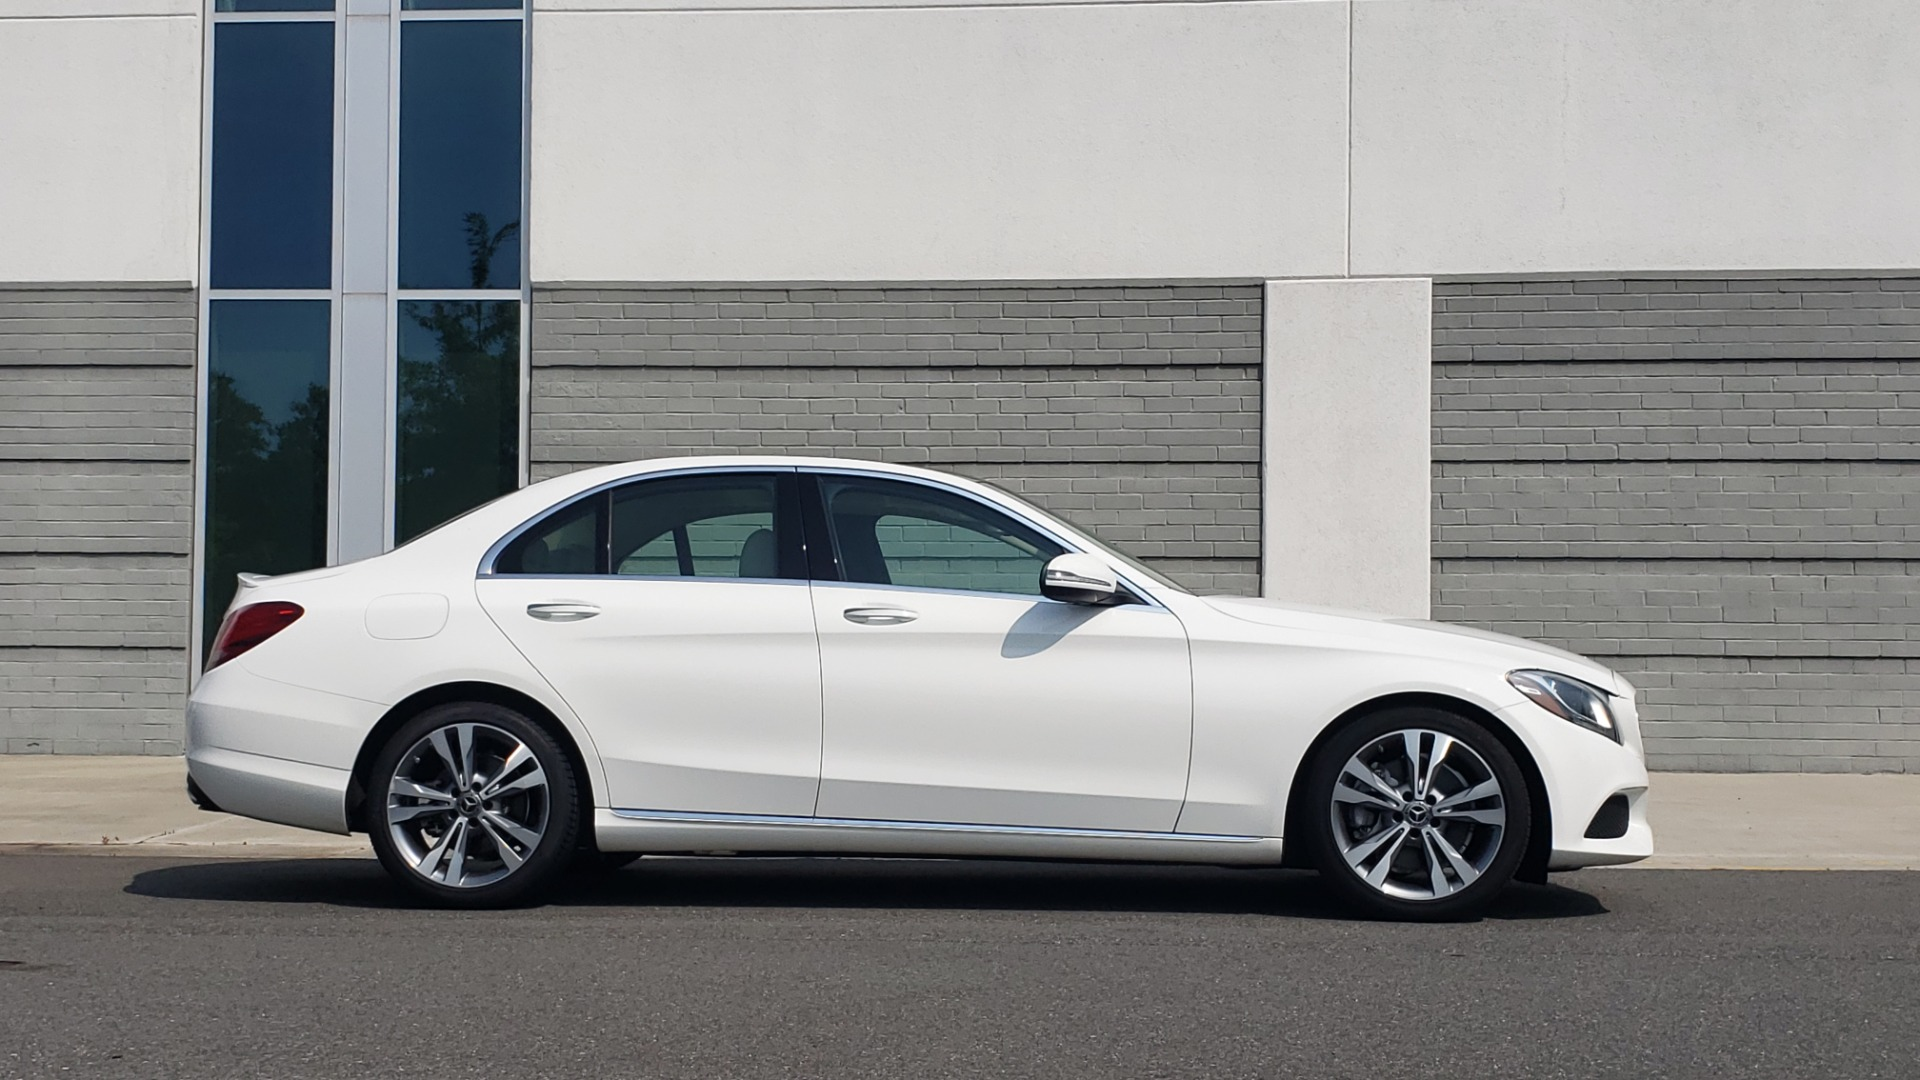 Used 2018 Mercedes-Benz C-CLASS C 300 PREMIUM / KEYLESS-GO / APPLE / PANO-ROOF / REARVIEW for sale $28,295 at Formula Imports in Charlotte NC 28227 9